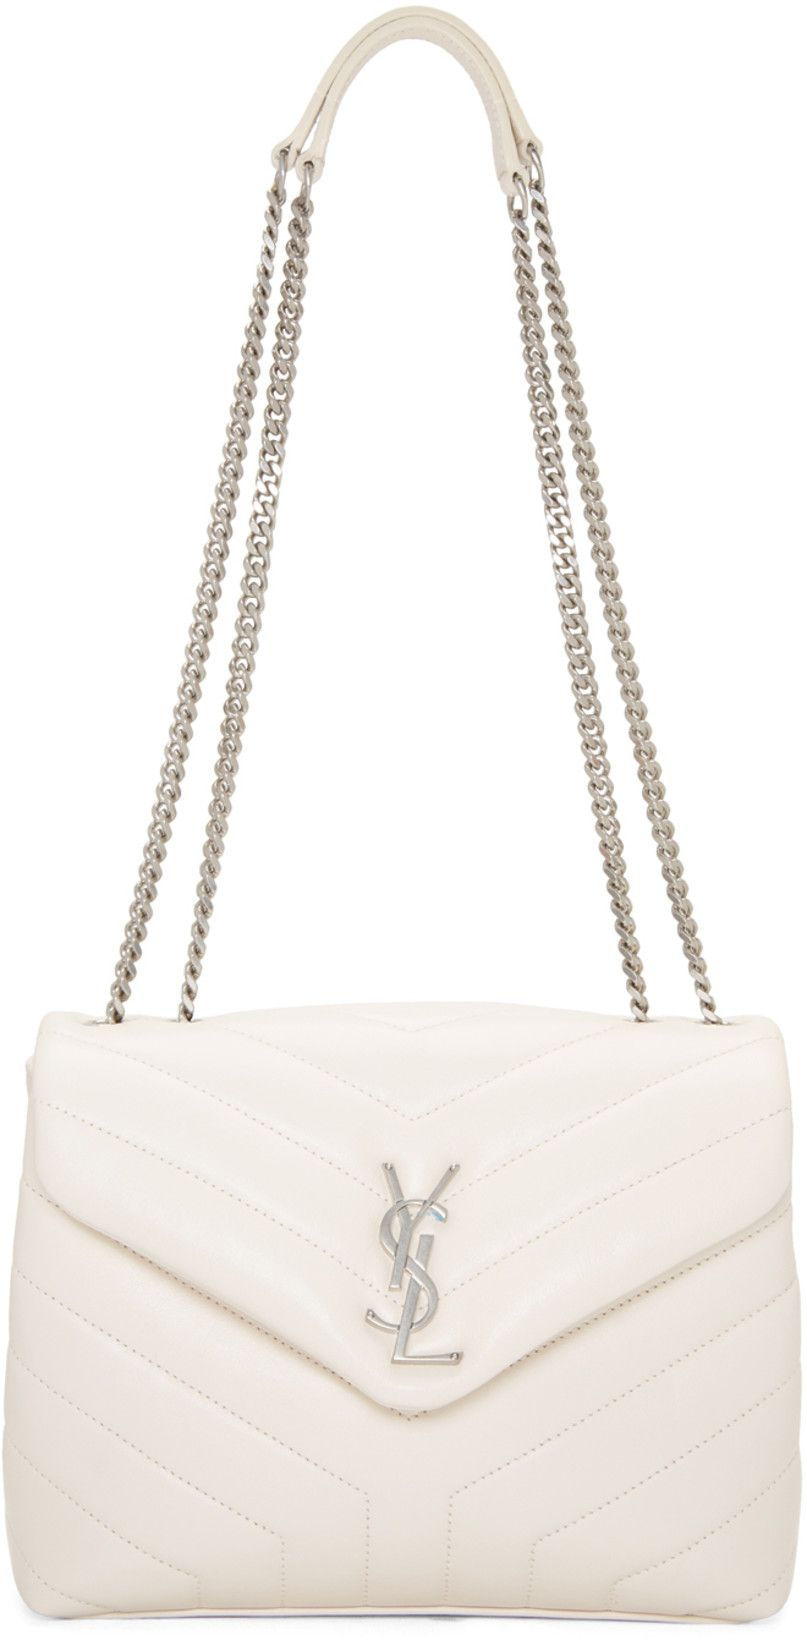 Saint Laurent Off White Small Loulou Chain Bag